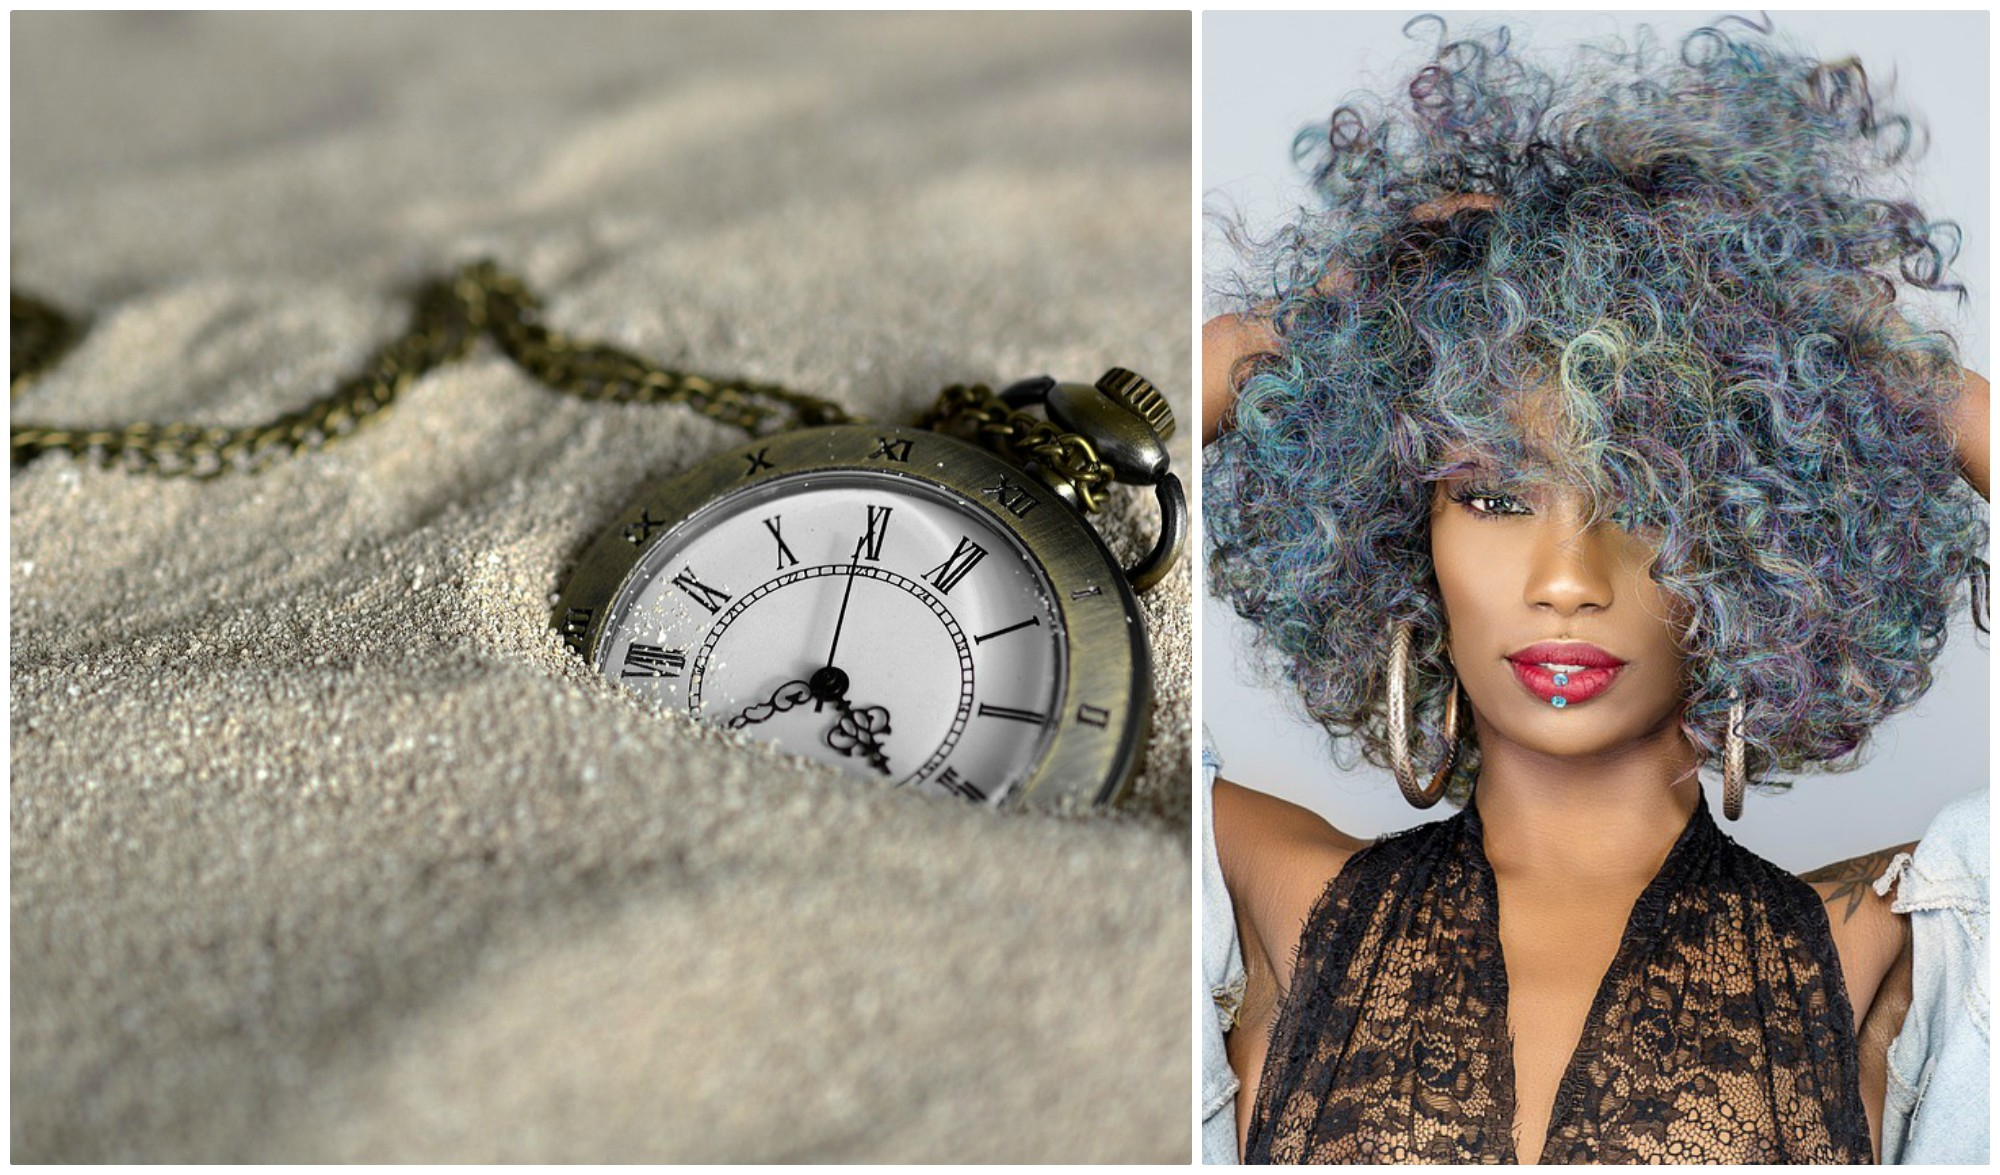 A pocket watch in the sand and a woman with big, curly hair in several colours.